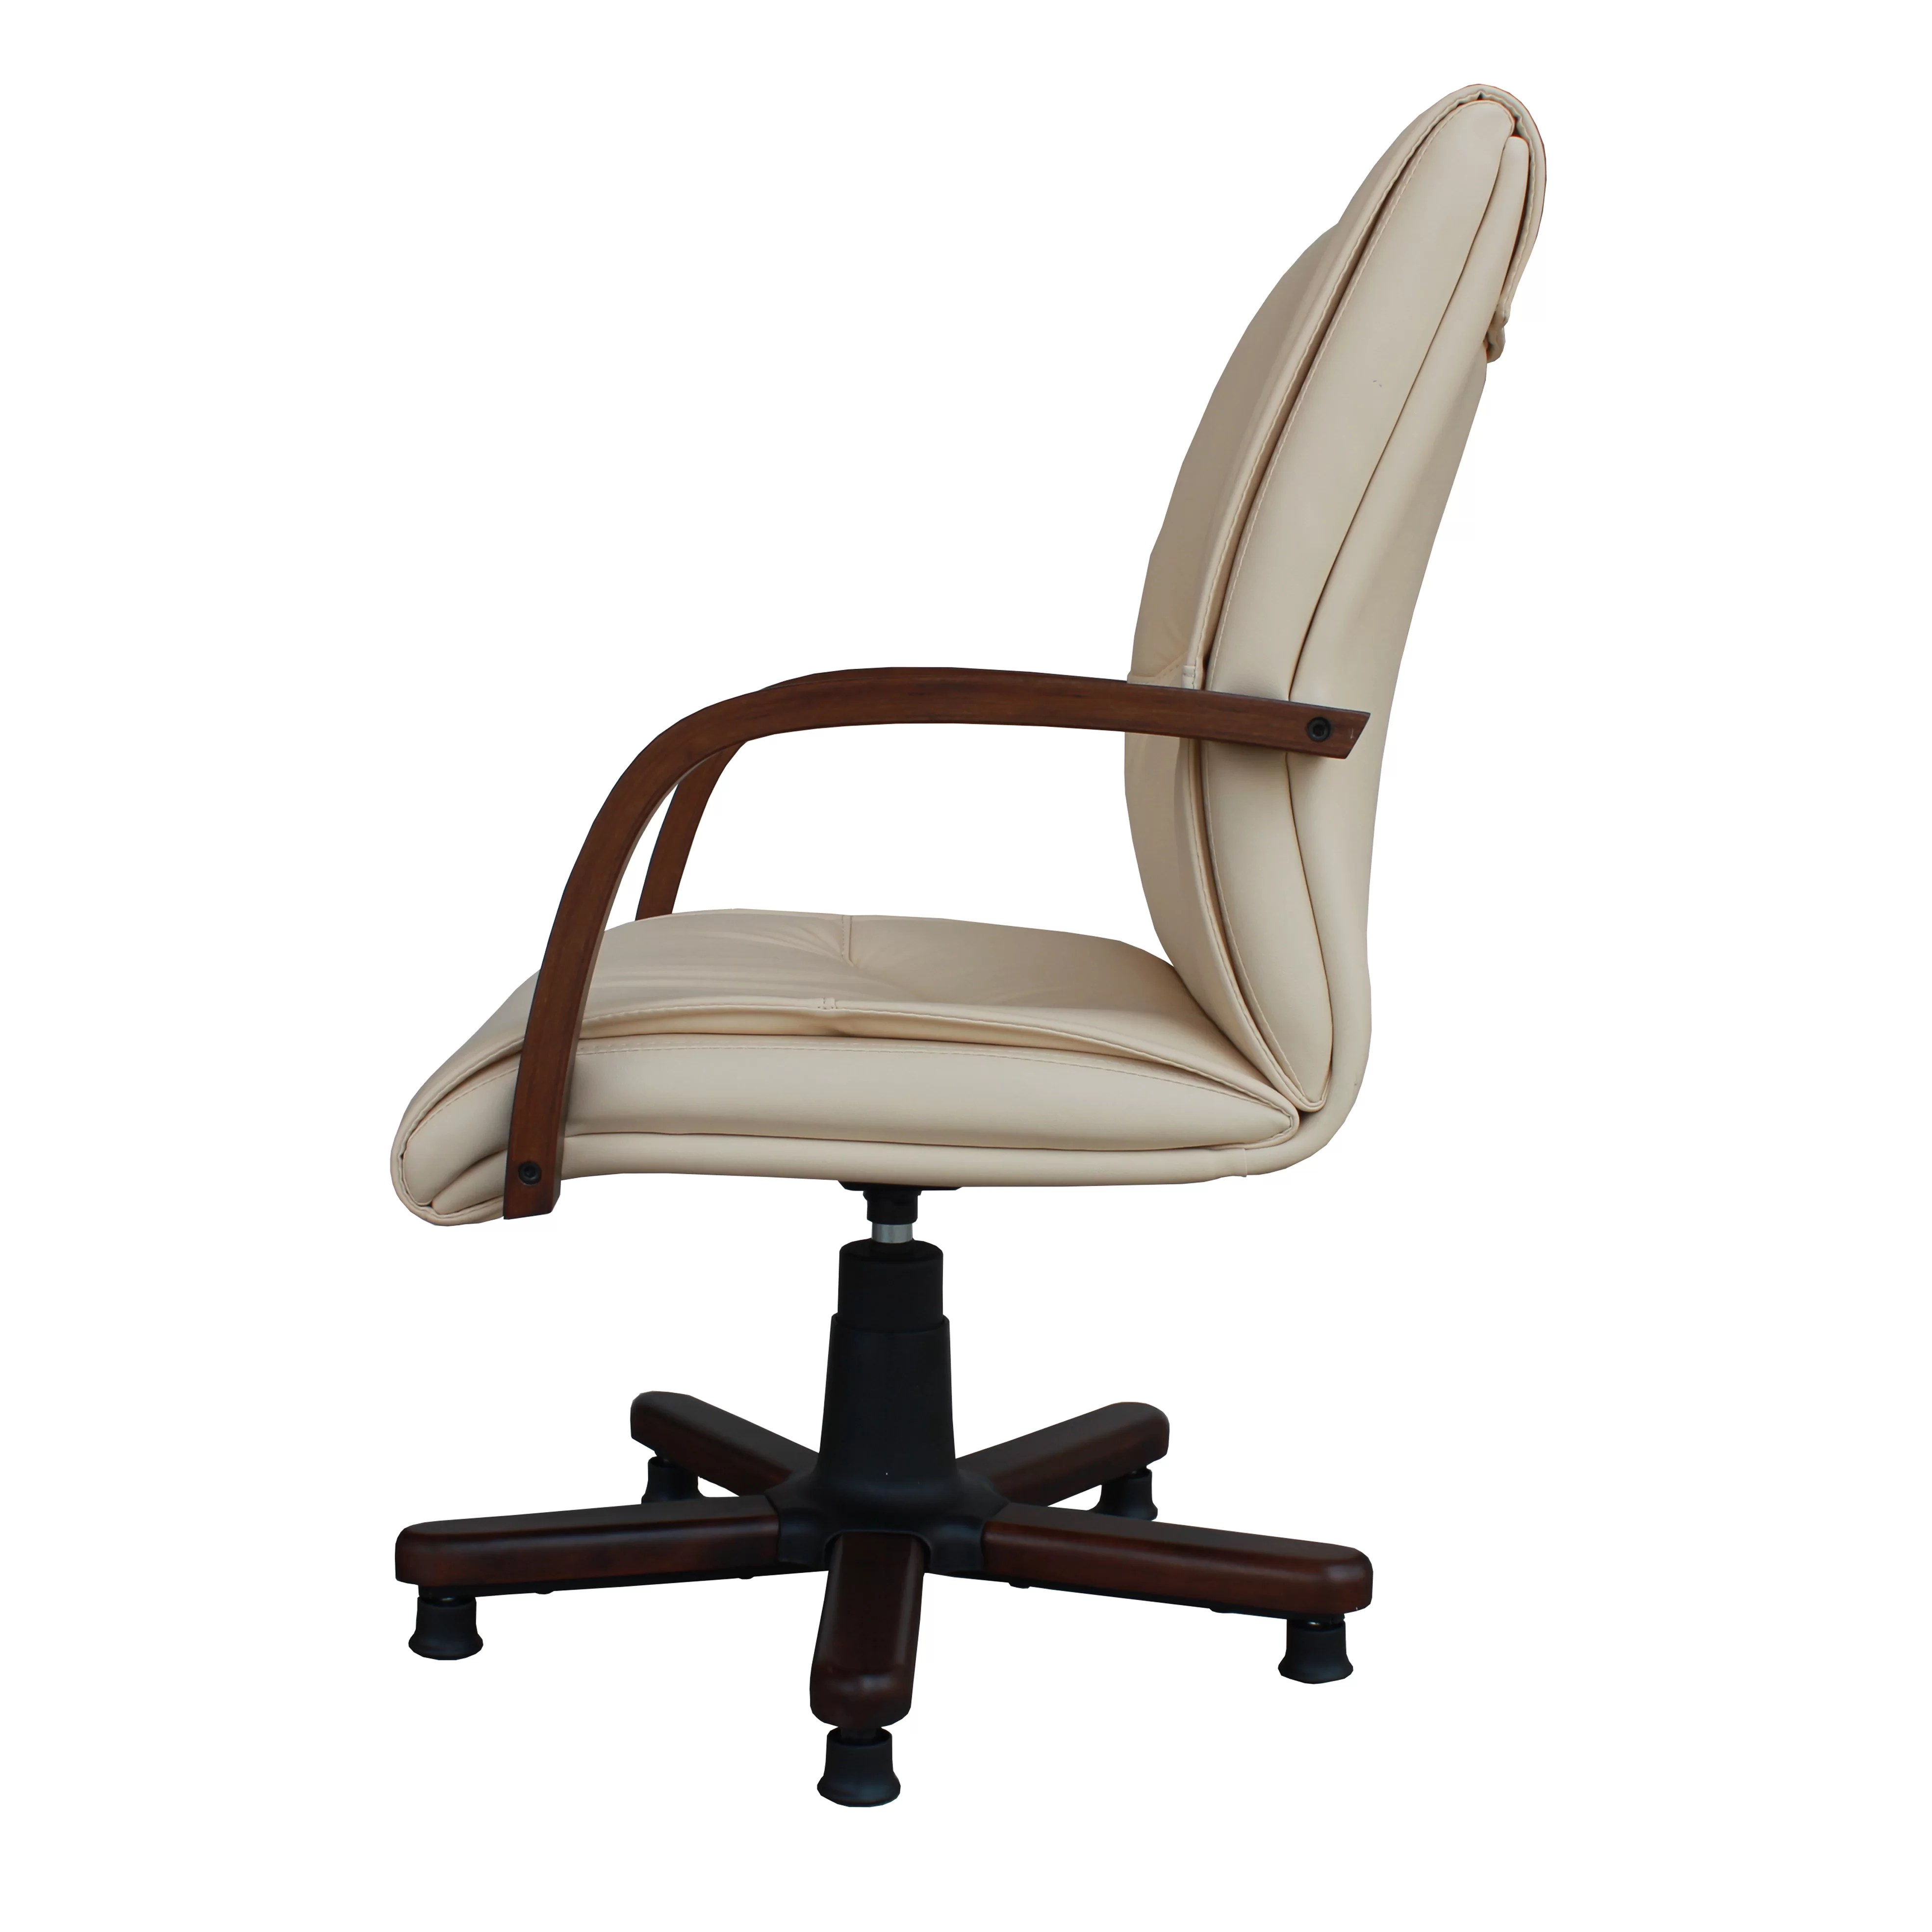 relax your back chair without arms winport industries high desk